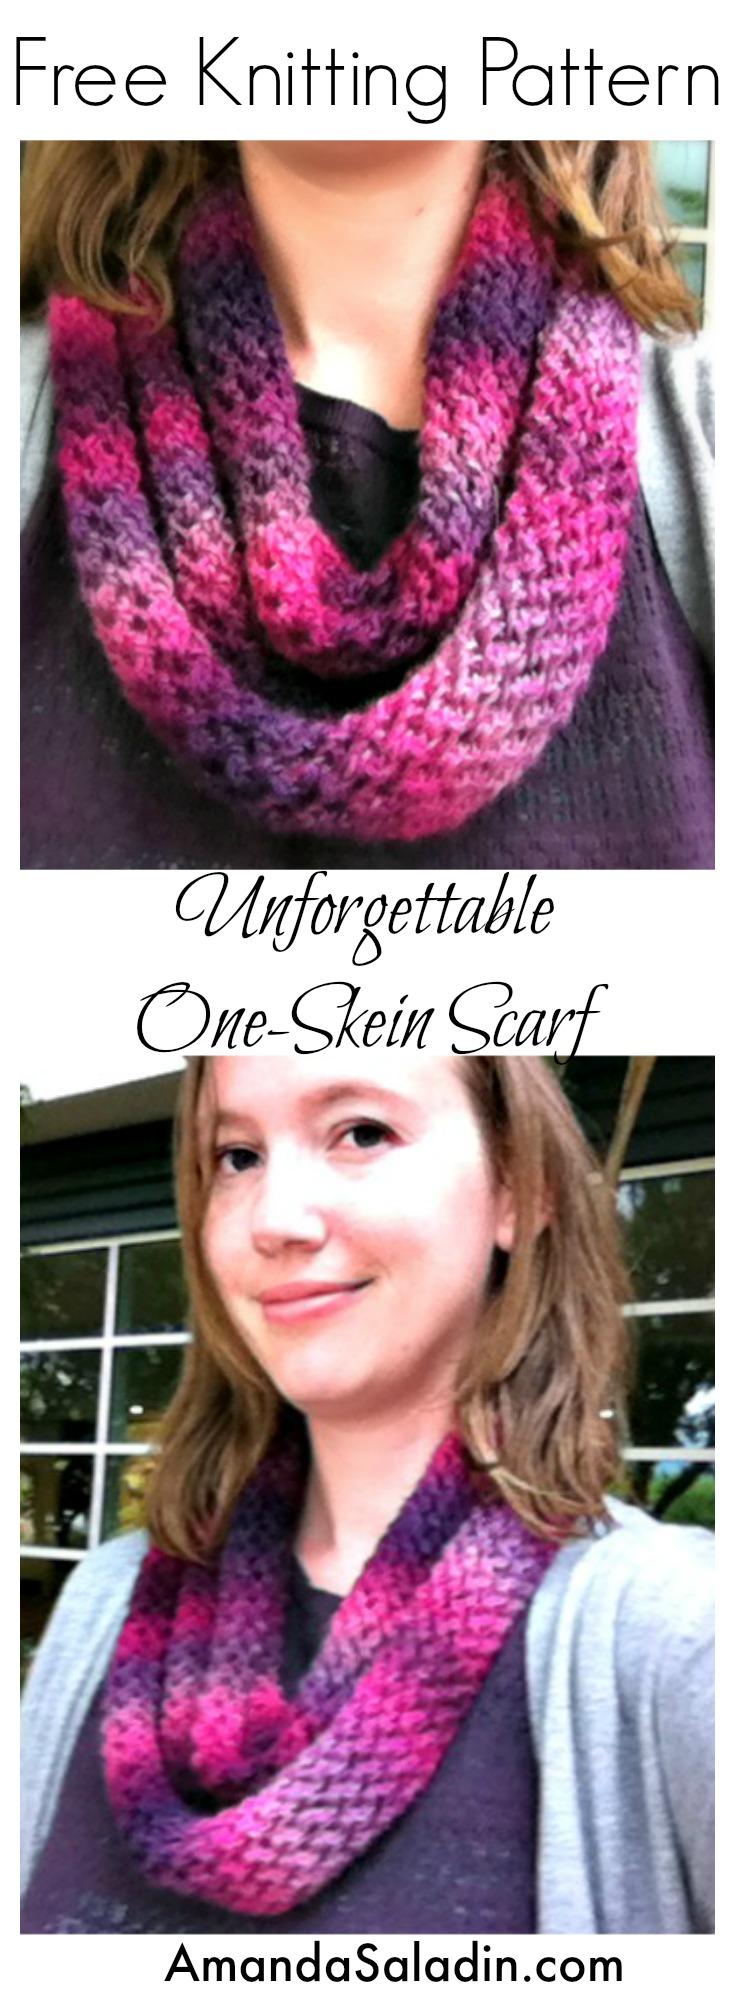 Free Knitting Pattern with an easy-to-remember four row repeat!